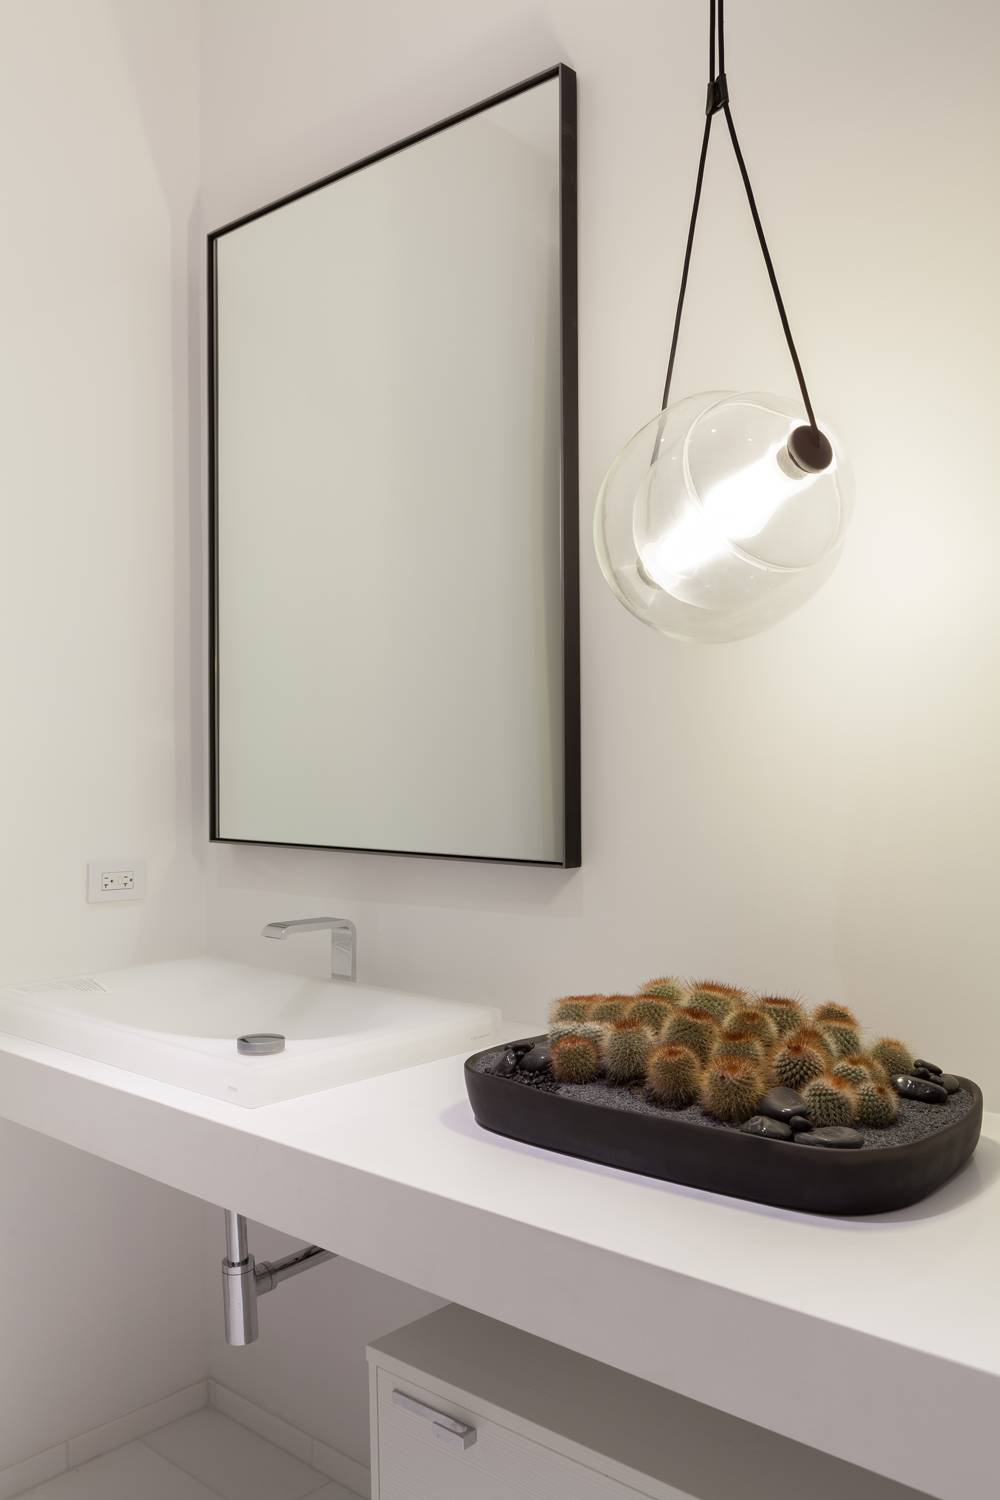 An ensuite bath to the sitting room, also designed by Matt MacDonald, beautifully showcases the Capsula LED Pendant by Brokis.